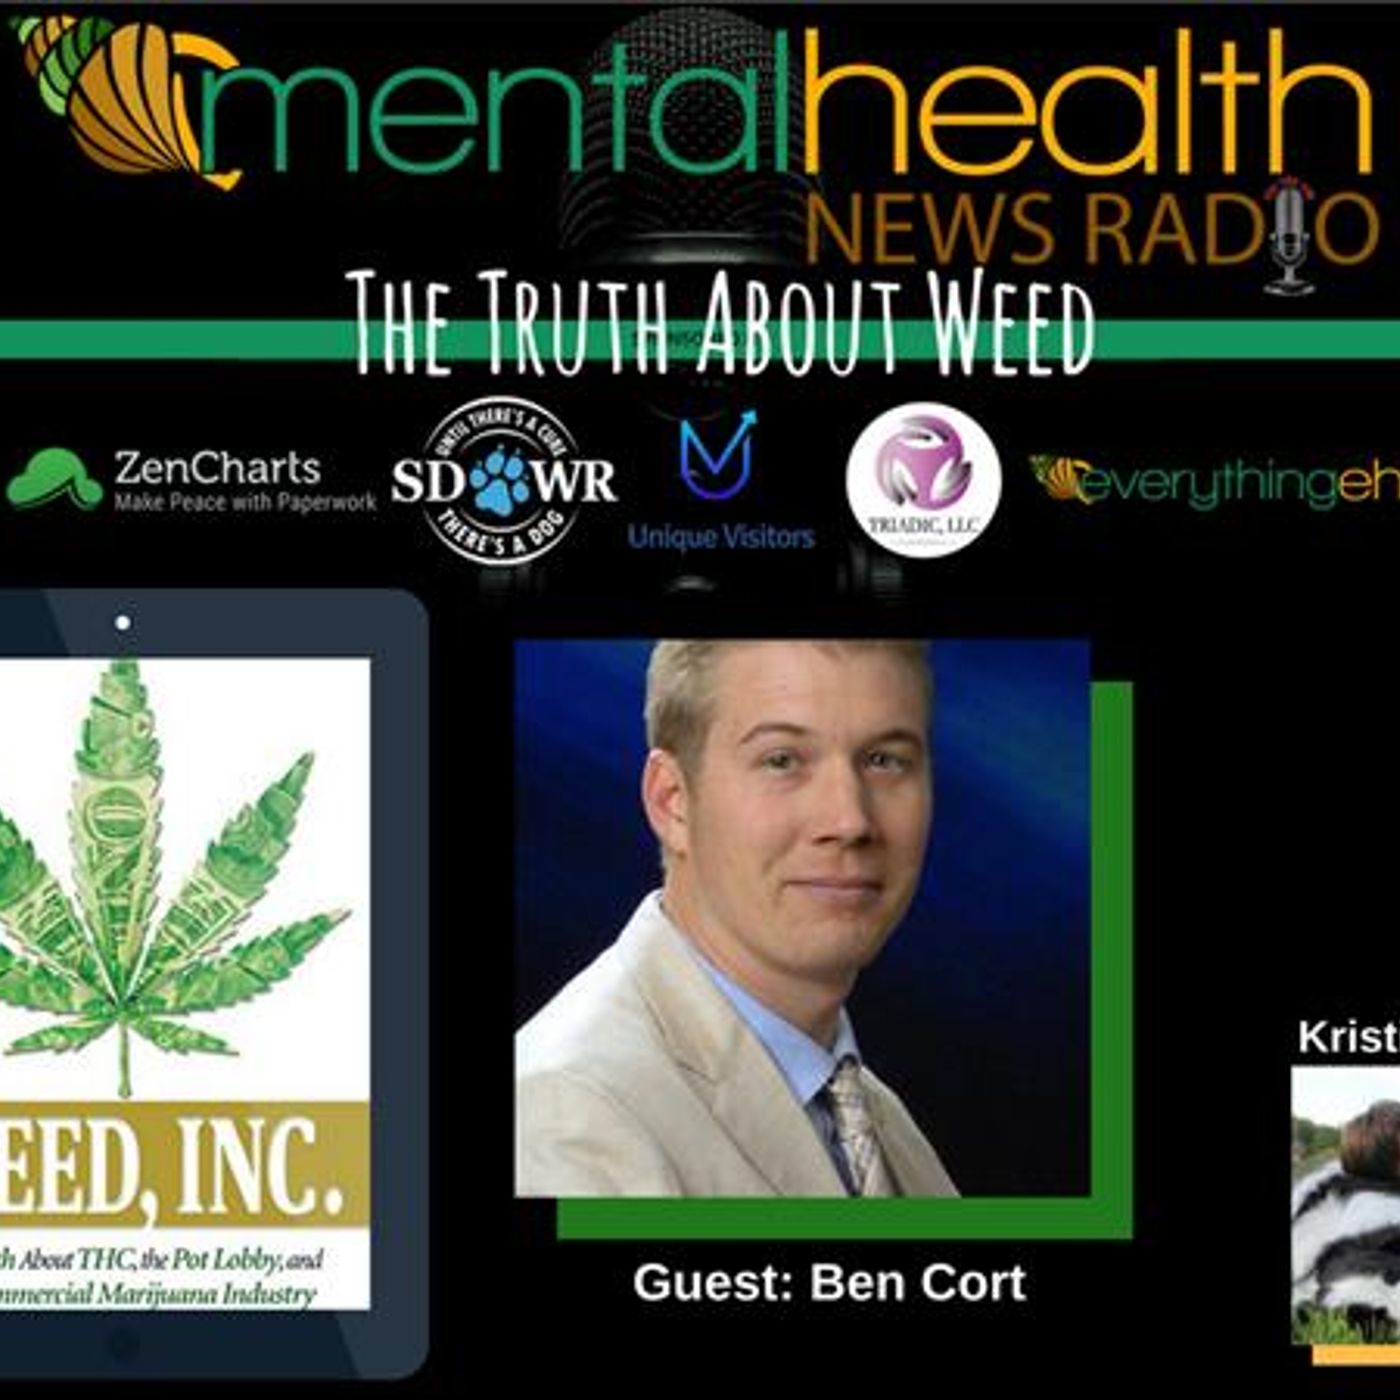 Mental Health News Radio - The Truth About Weed: THC, The Pot Lobby, & The Commercial Marijuana Industry